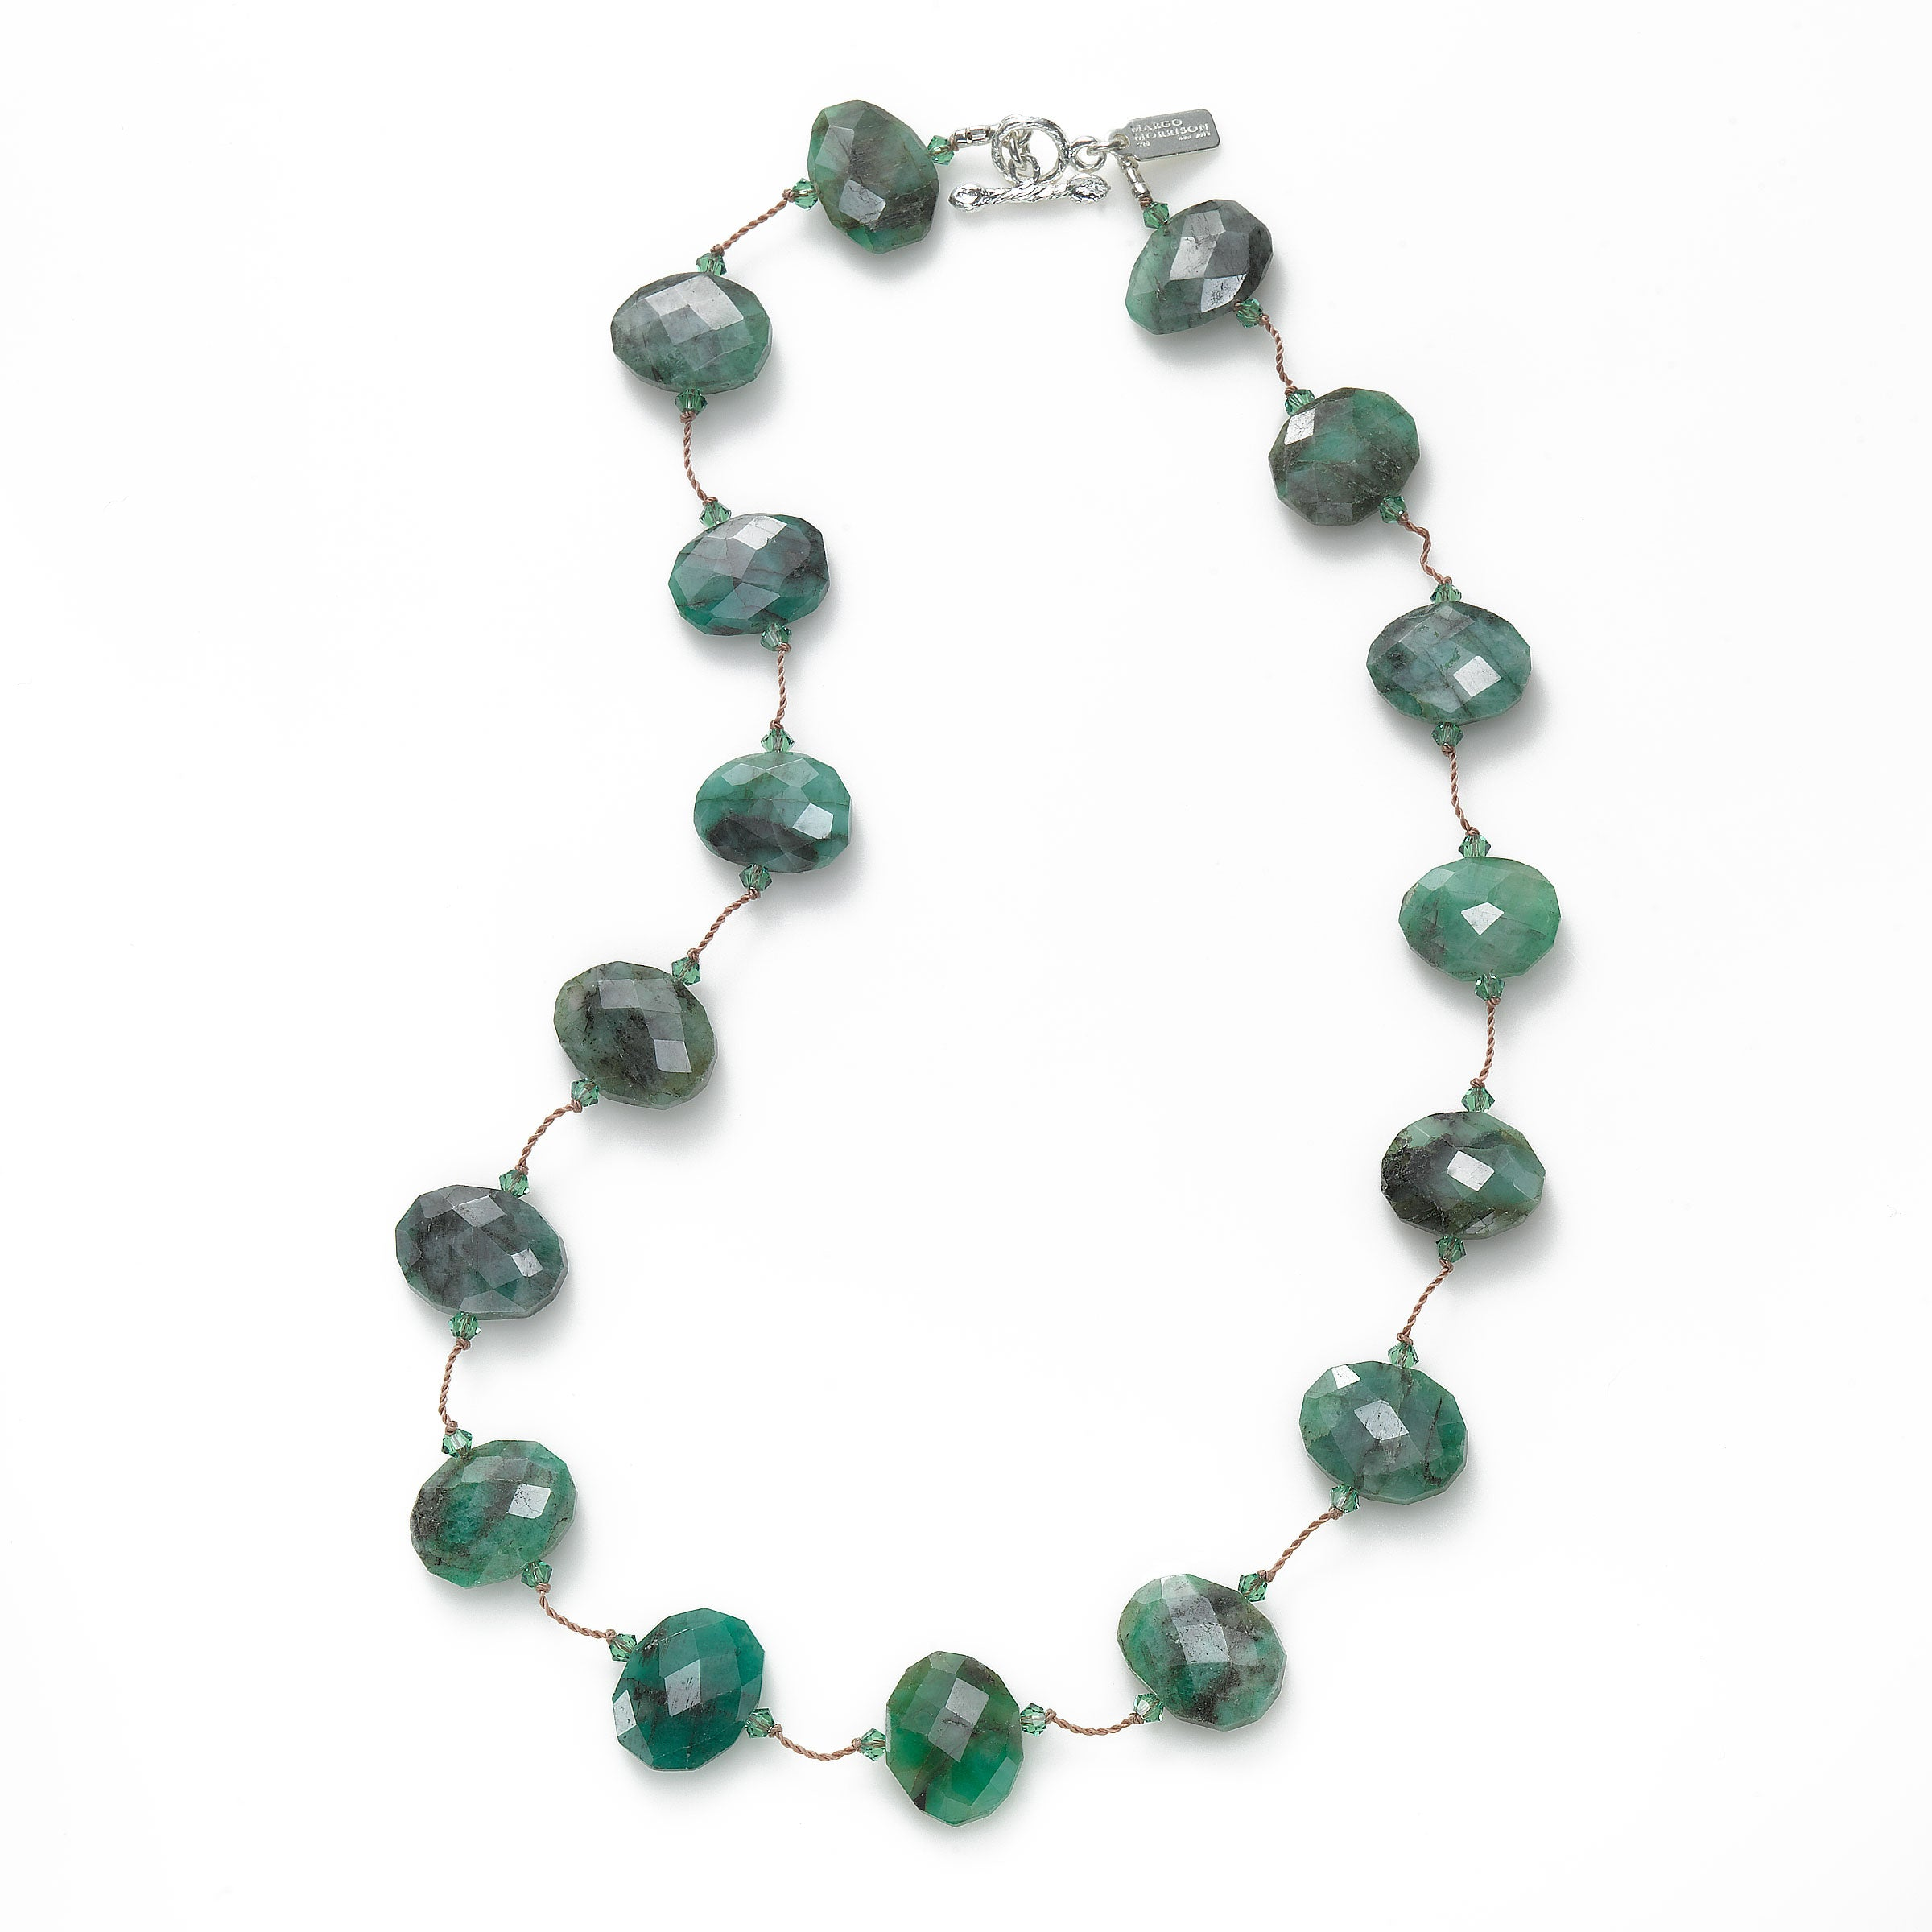 Raw Emerald and Swarovski Crystal Necklace, Sterling Silver, 17 Inch